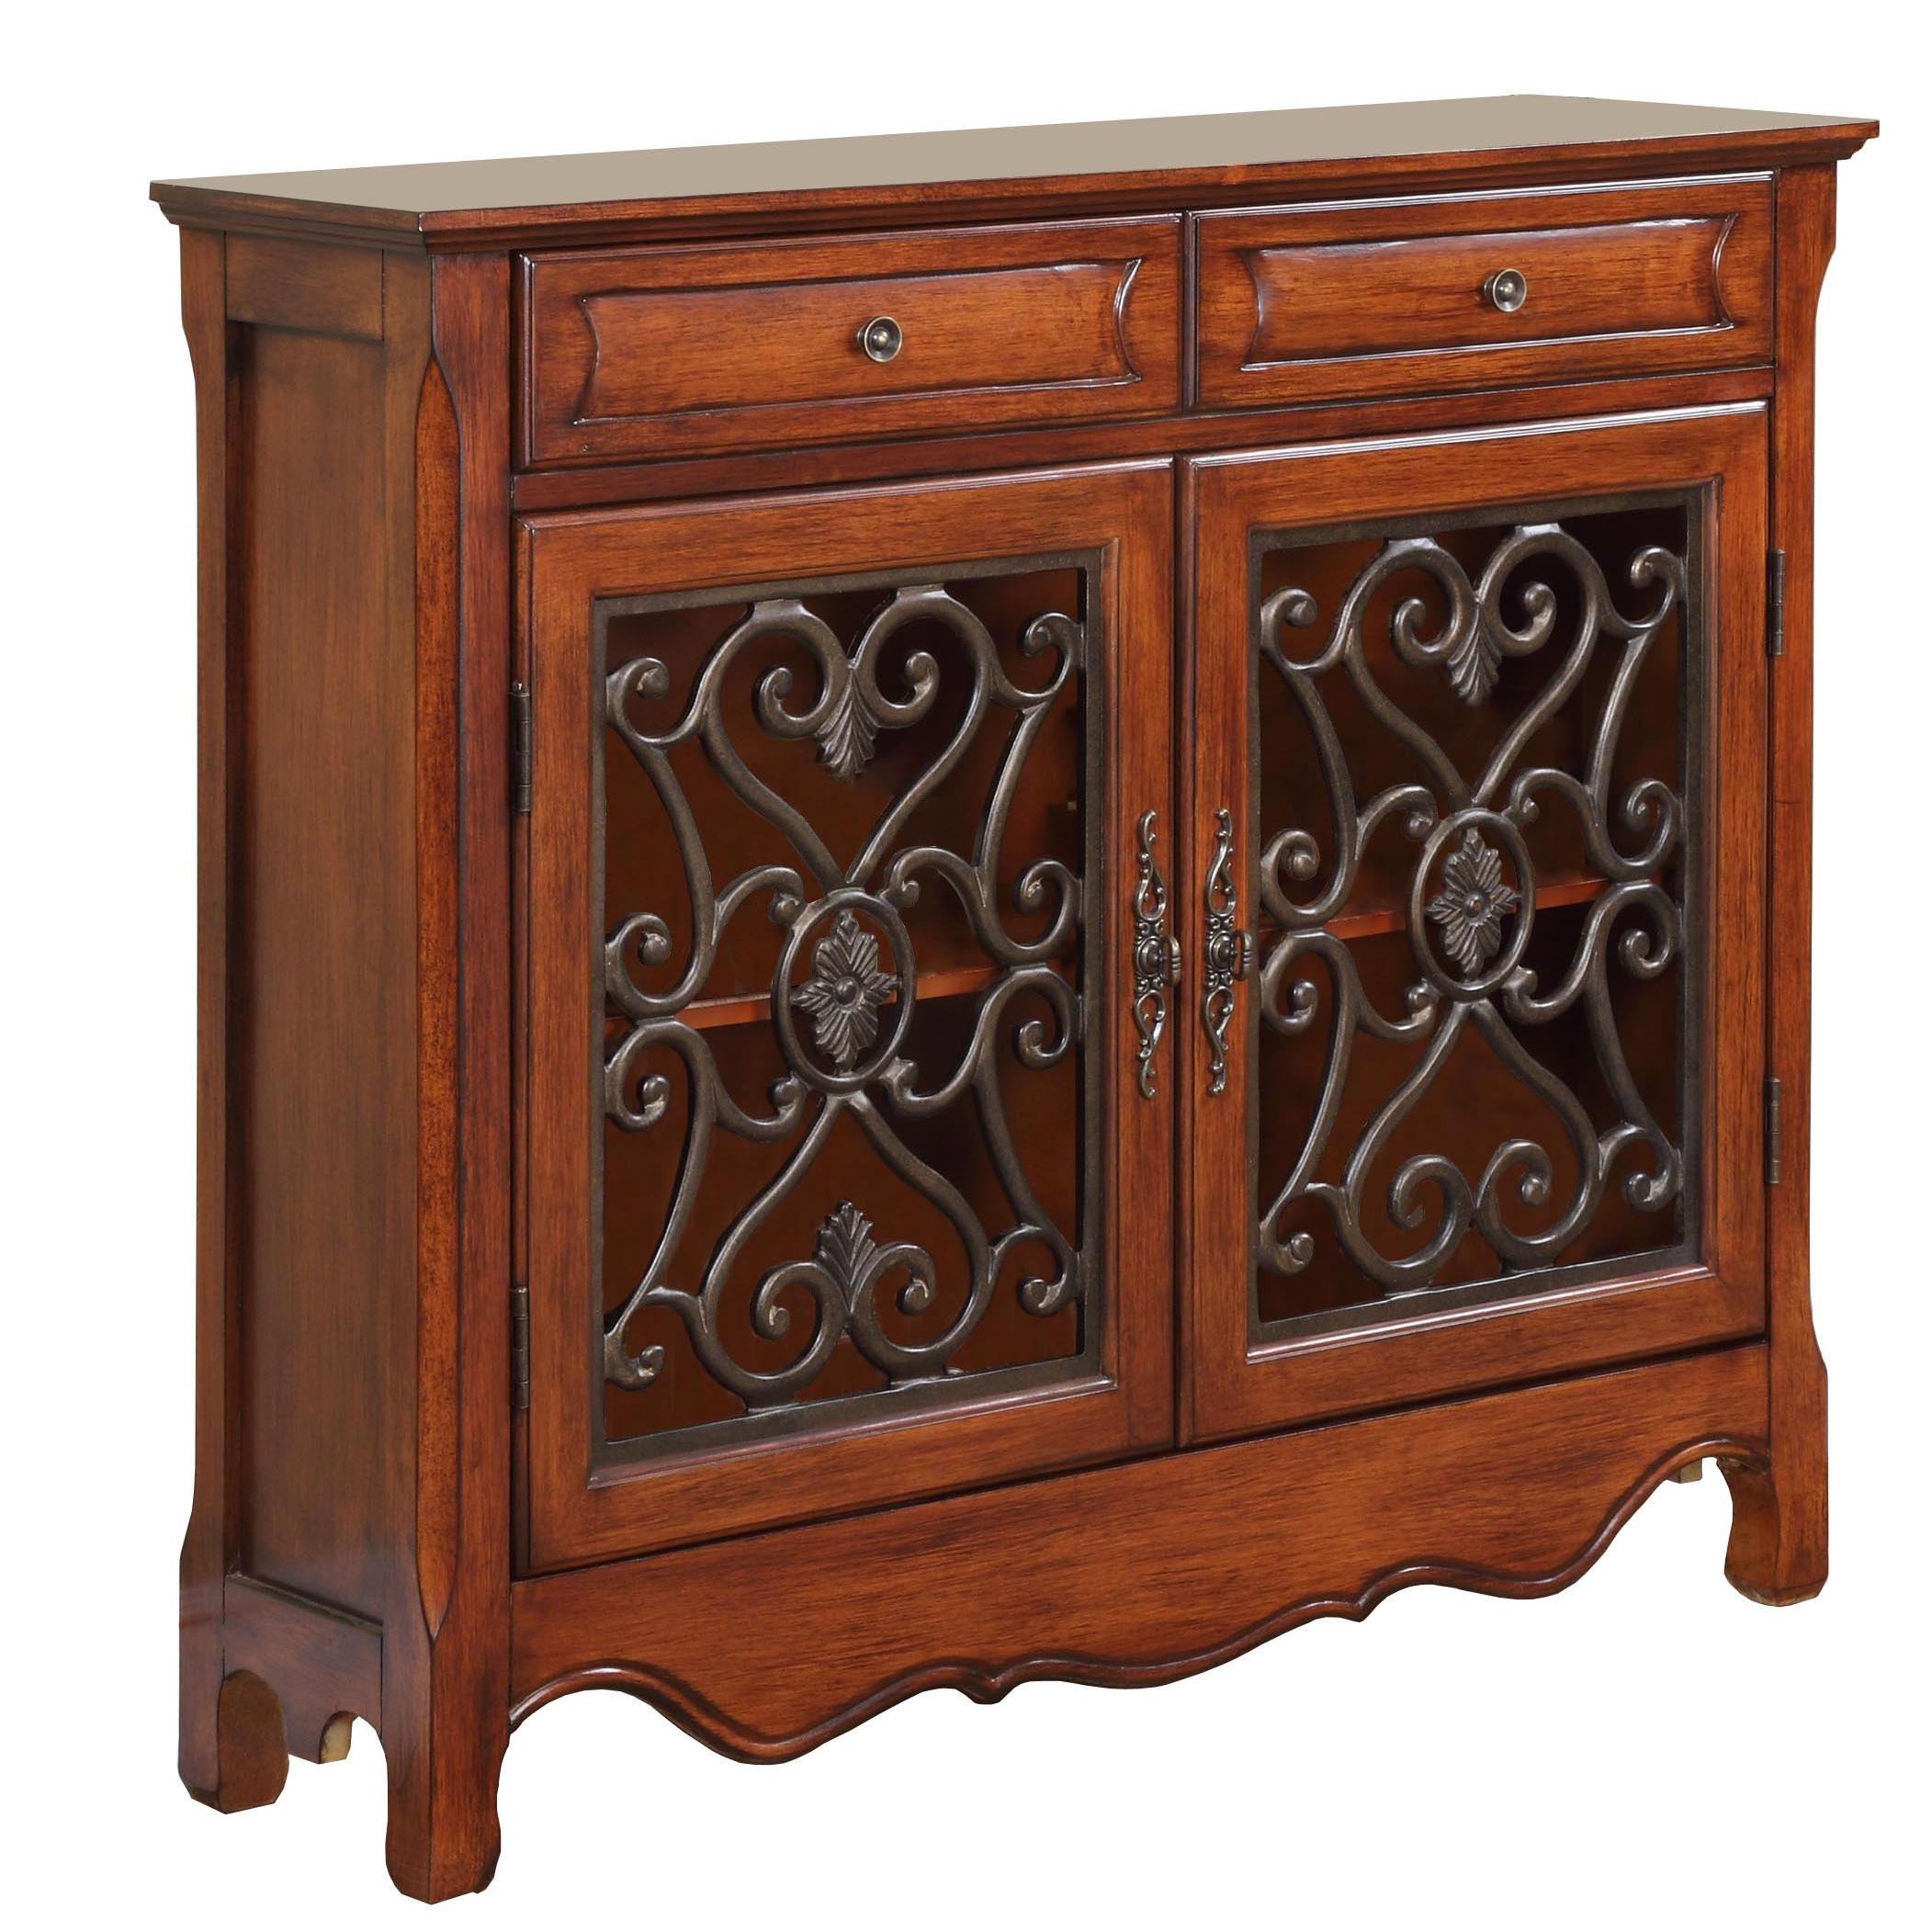 Accents Light Cherry Console Cabinet by Powell at Bullard Furniture